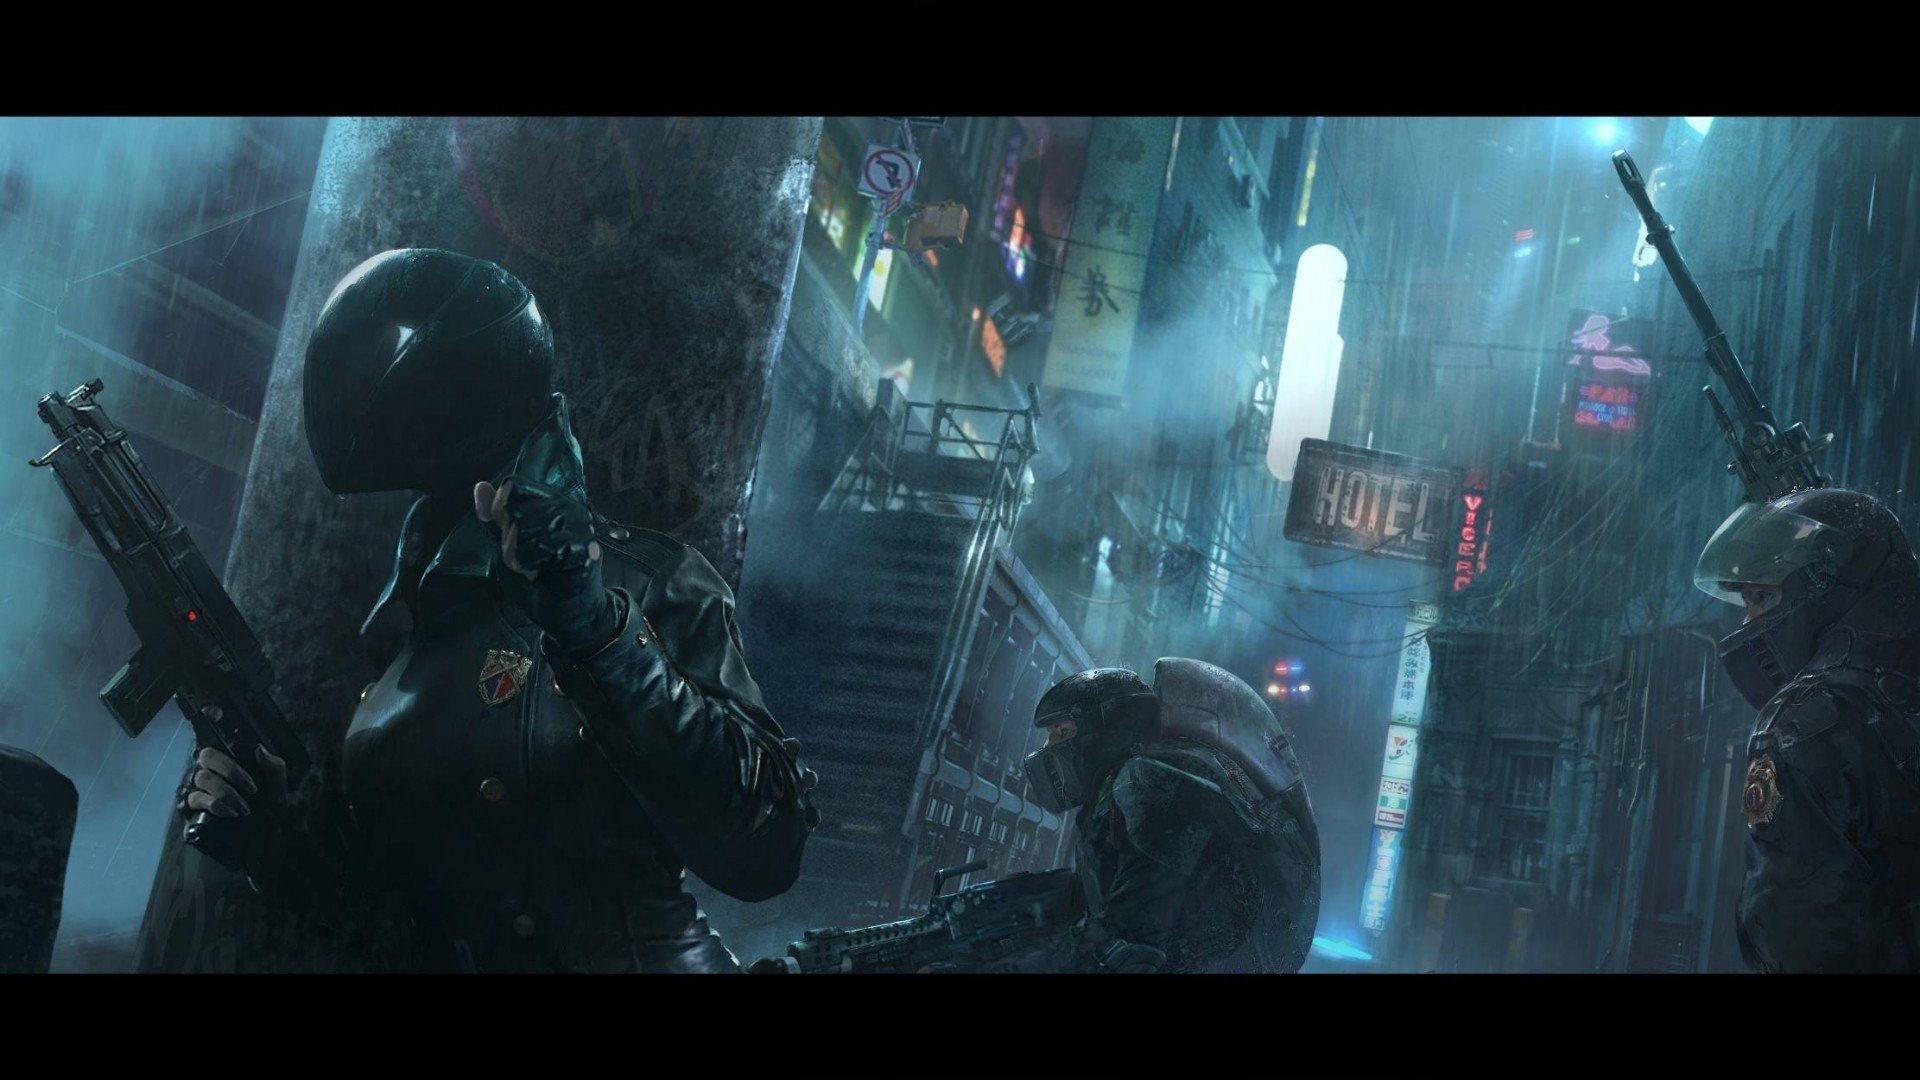 764553-artwork-cityscapes-cyberpunk-futuristic-judgement-police-riots-suburbs.jpg